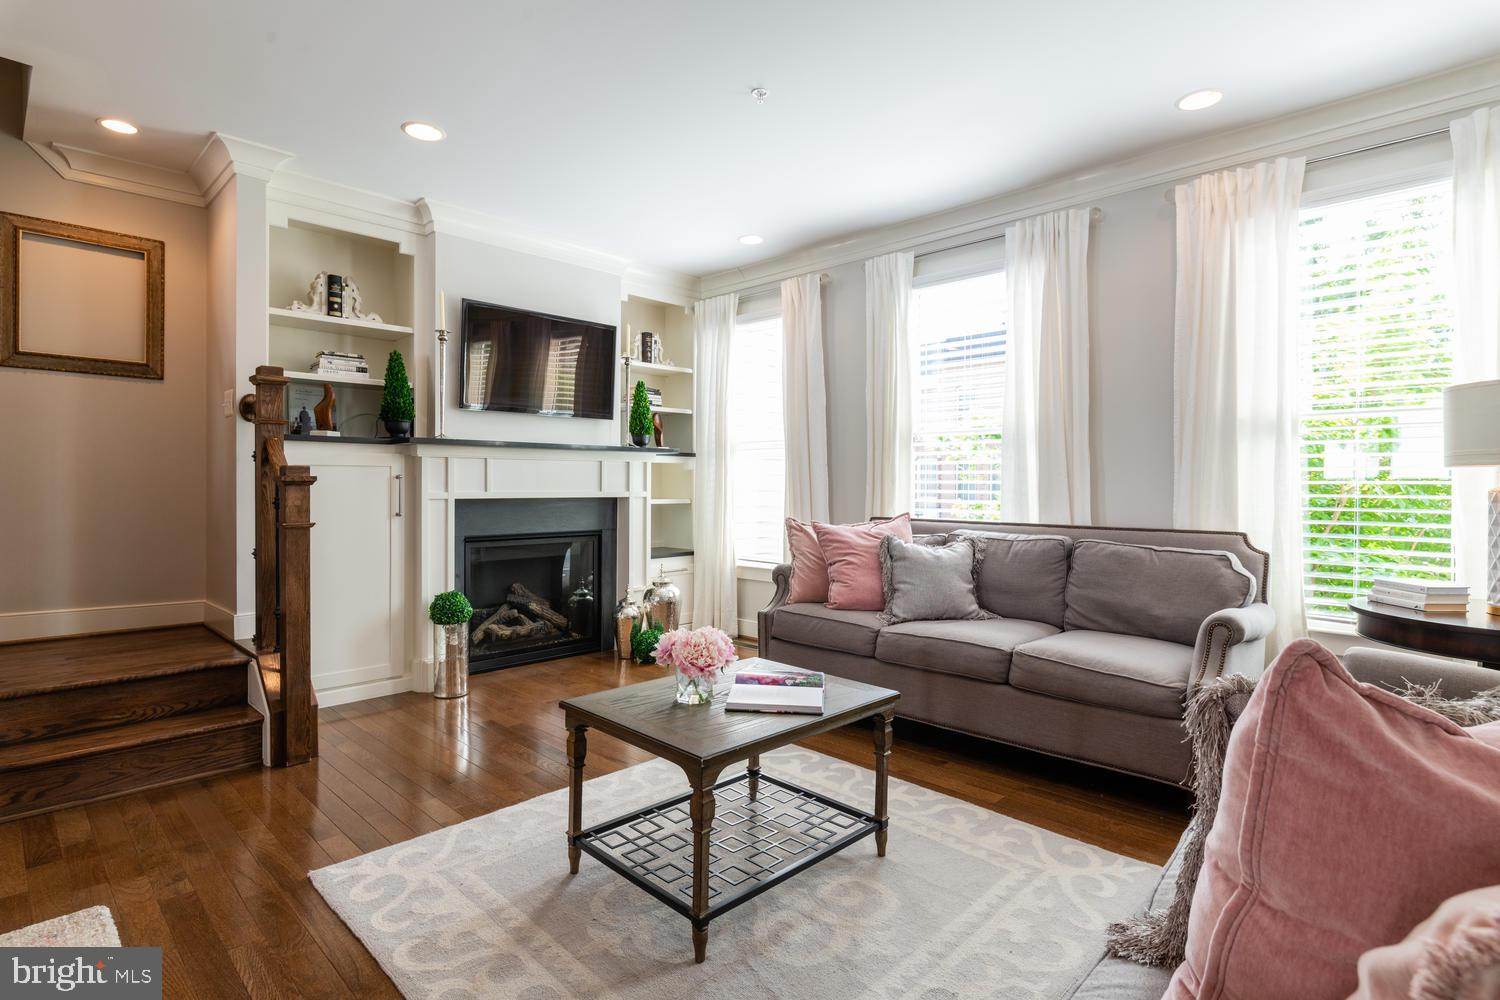 This beautiful townhouse located in the heart of Old Town Alexandria is steps from Braddock Road metro, National Landing (Amazon HQ2), Reagan National Airport, and many new restaurants.  Located in the sought-after community of Old Town Commons, 921 North Alfred Street is a luxury 3 bedroom/3.5 bath townhouse that features traditional architecture with modern design elements. This home offers a 2-car garage, ample storage, two outdoor entertaining spaces, and two separate flexible indoor spaces. All three bedrooms feature ensuite bathrooms. High-end finishes and thoughtful details throughout make this a one-of-a-kind home. Offers are Due Tuesday 6/4 at noon.